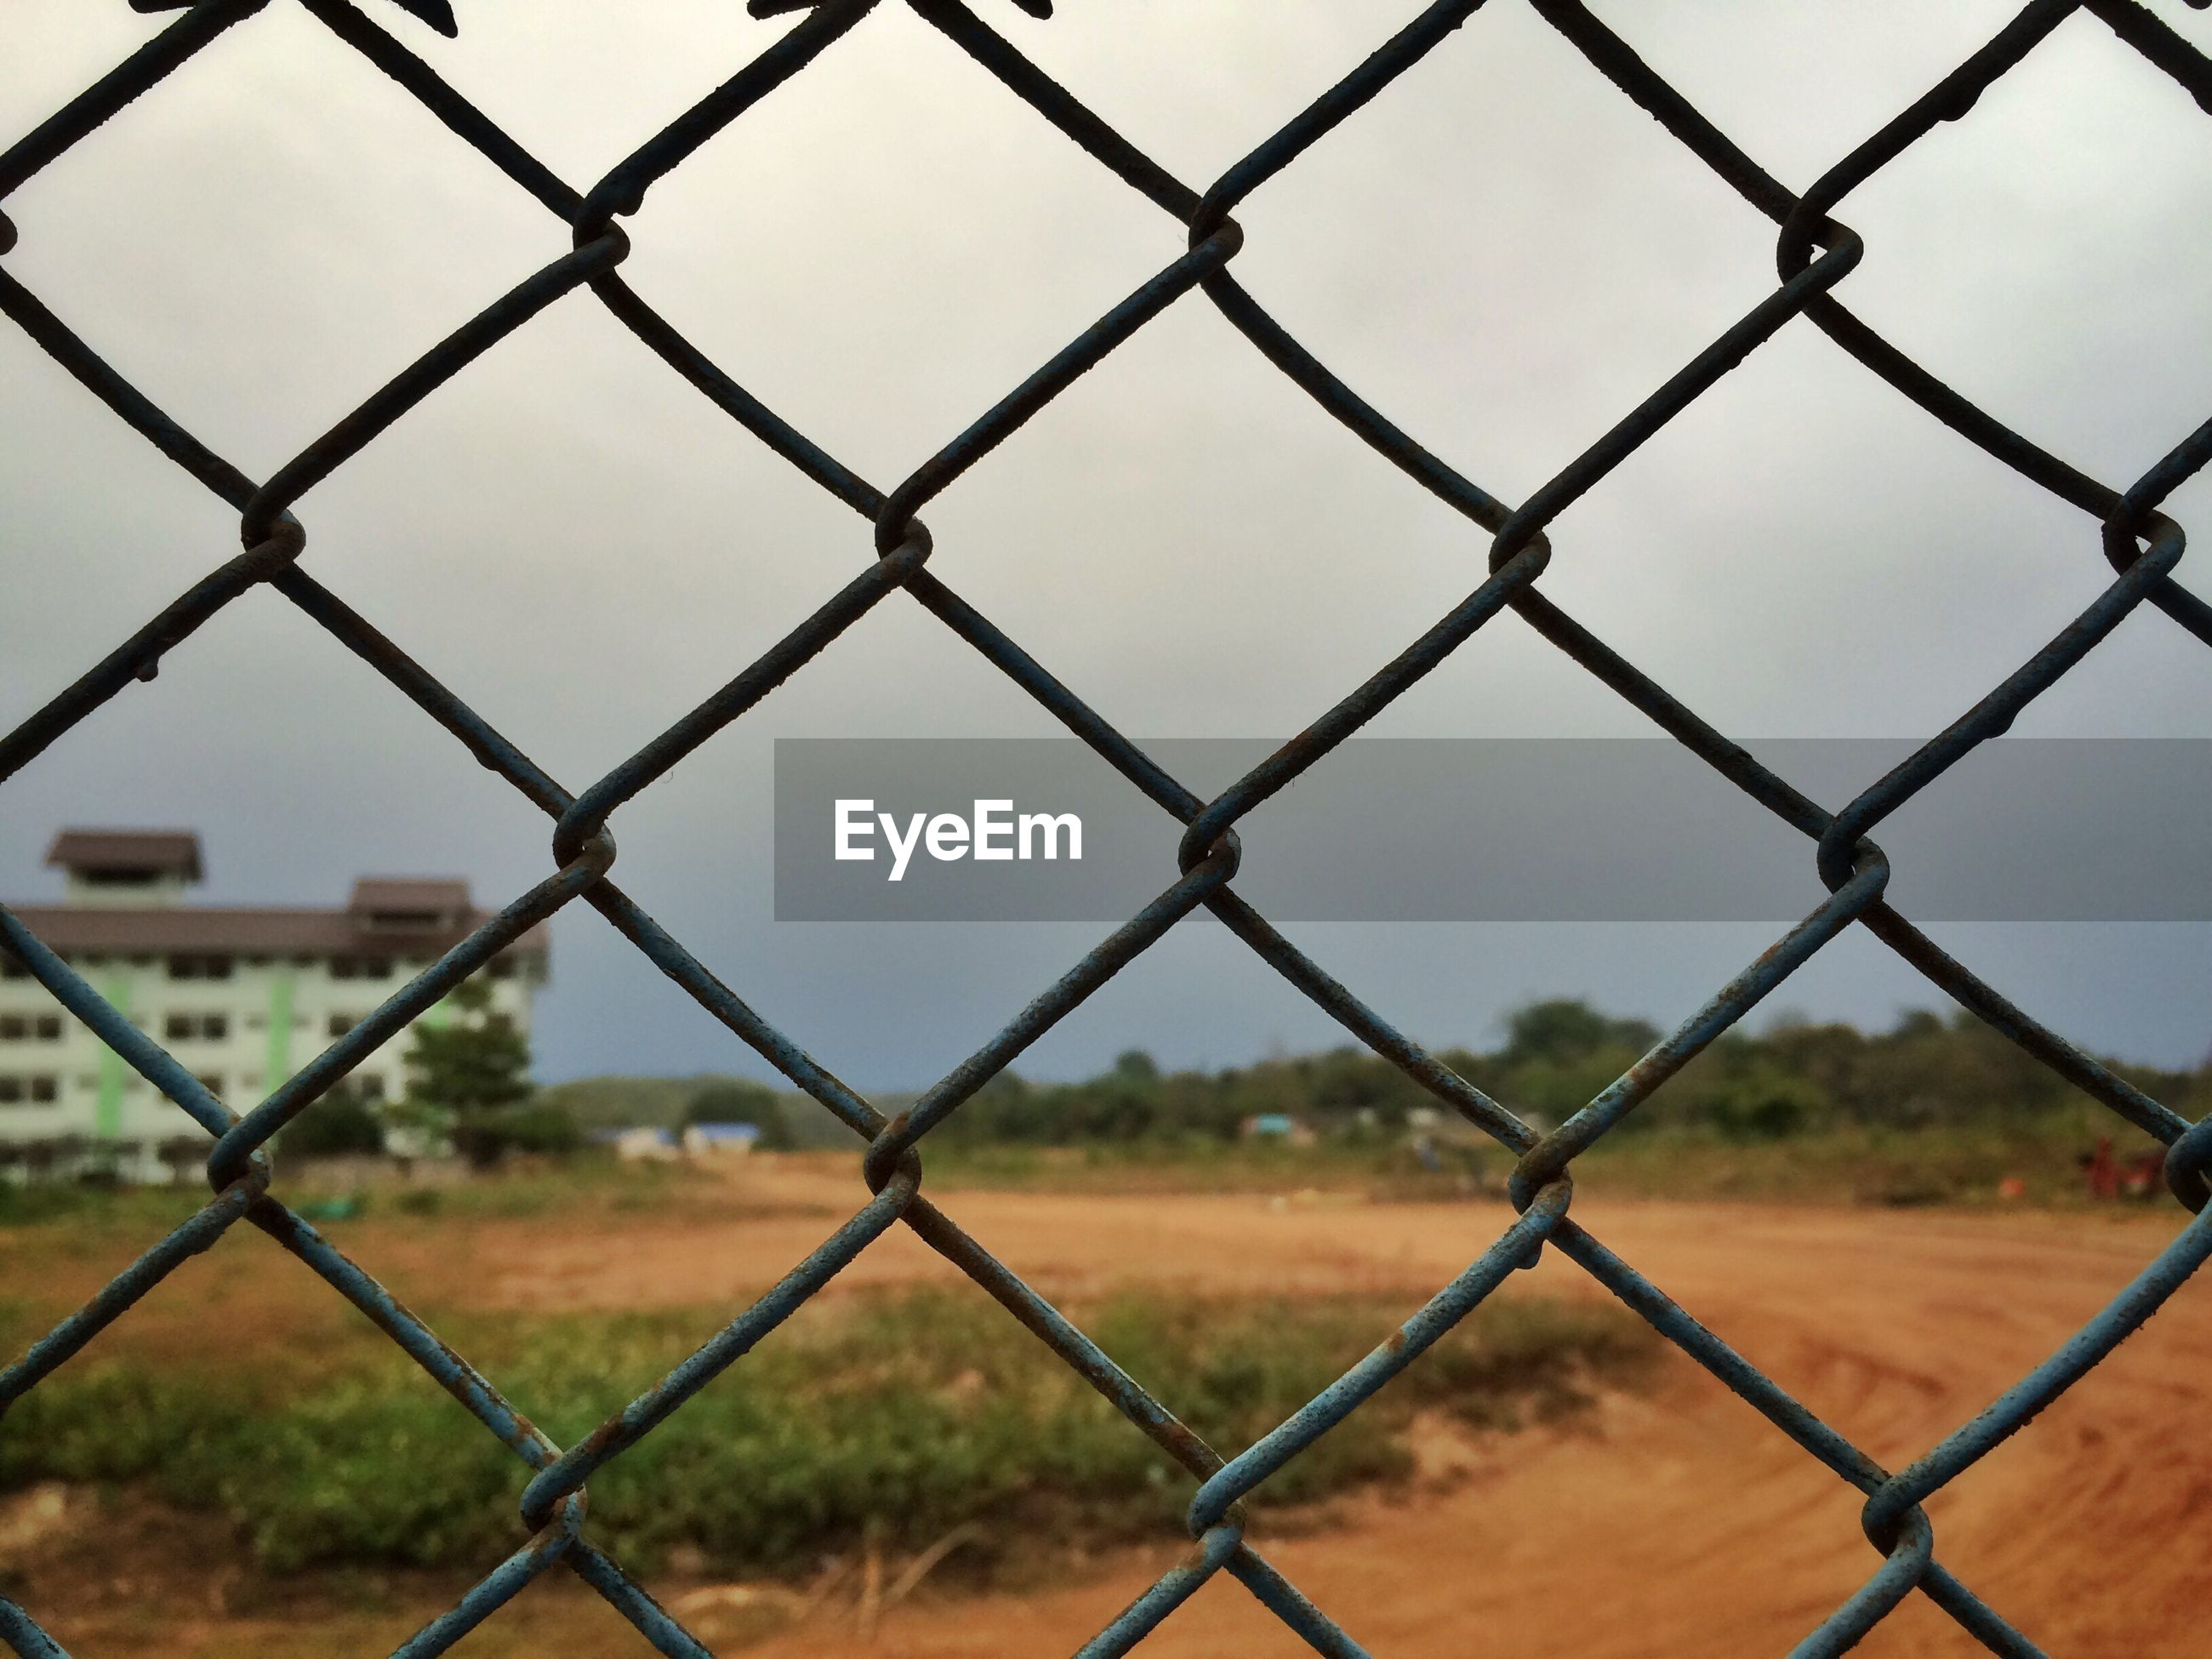 CLOSE-UP OF CHAINLINK FENCE AGAINST SKY IN CITY